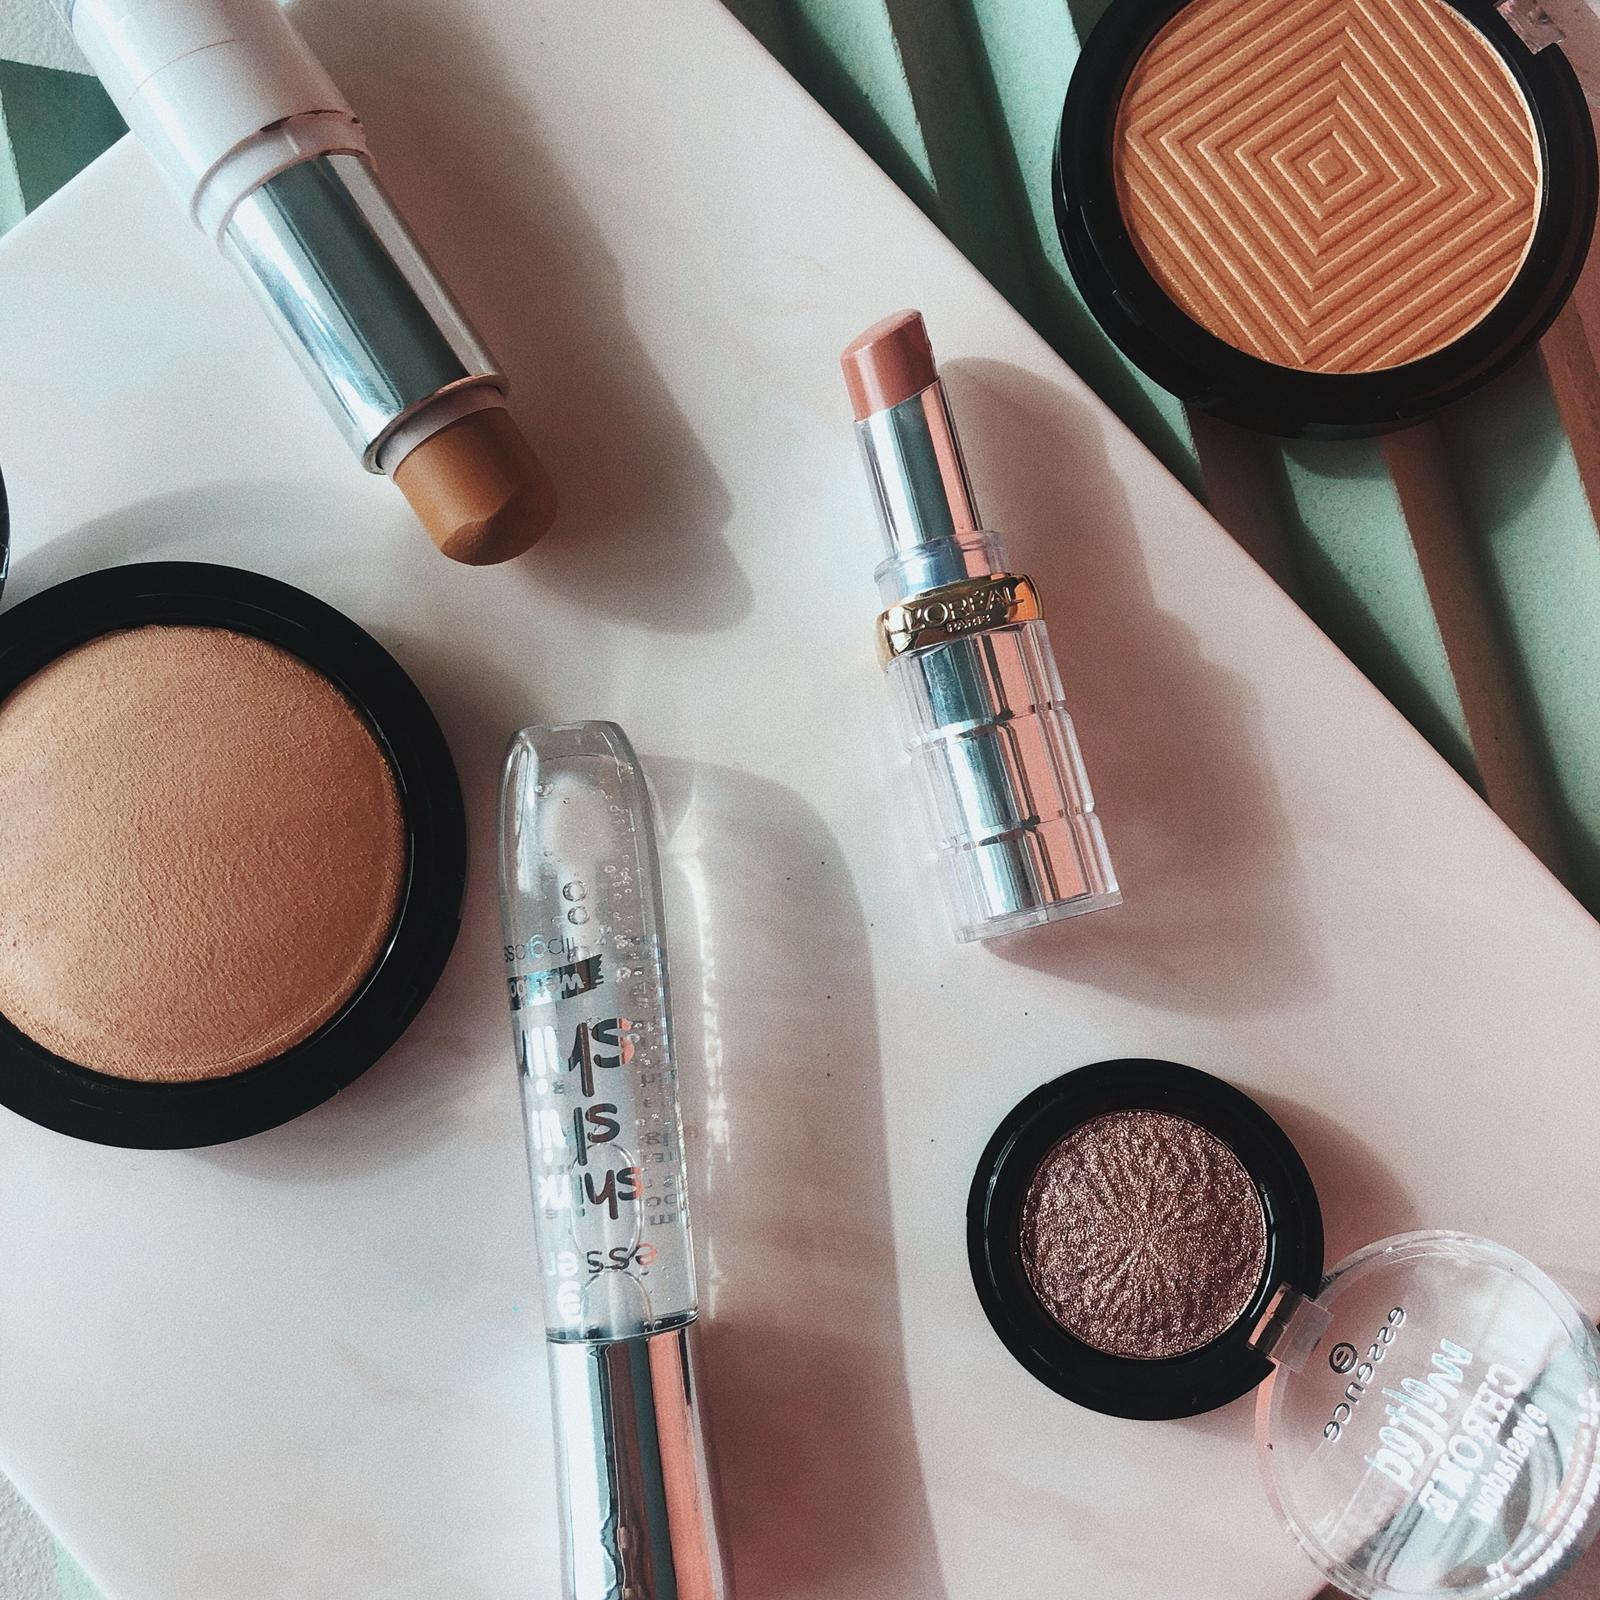 OUR CURRENT DRUGSTORE FINDS WE LOVE - …WE DIIIIG A GOOD BUDGET FIND - BECAUSE BEAUTY DOES NOT HAVE TO COME EXPENSIVE. HERE ARE OUR FAVORITES.